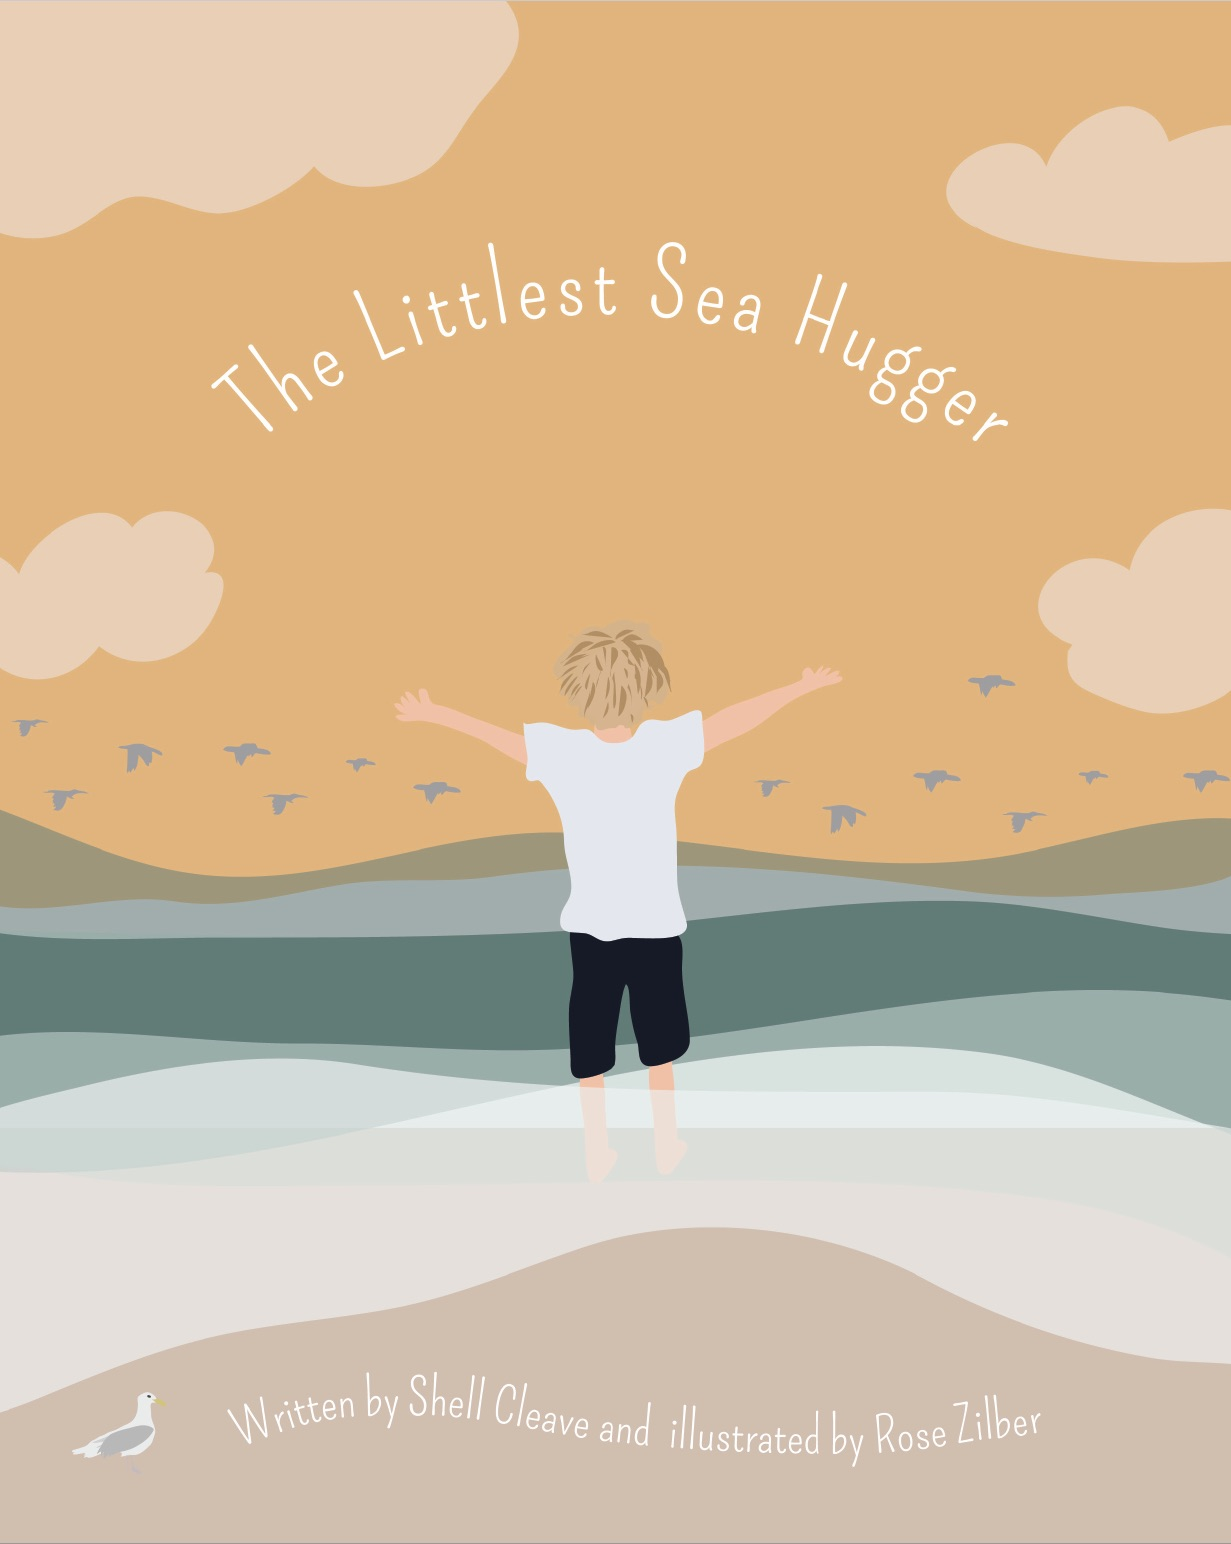 Give The Littlest Sea Hugger book to a classroom